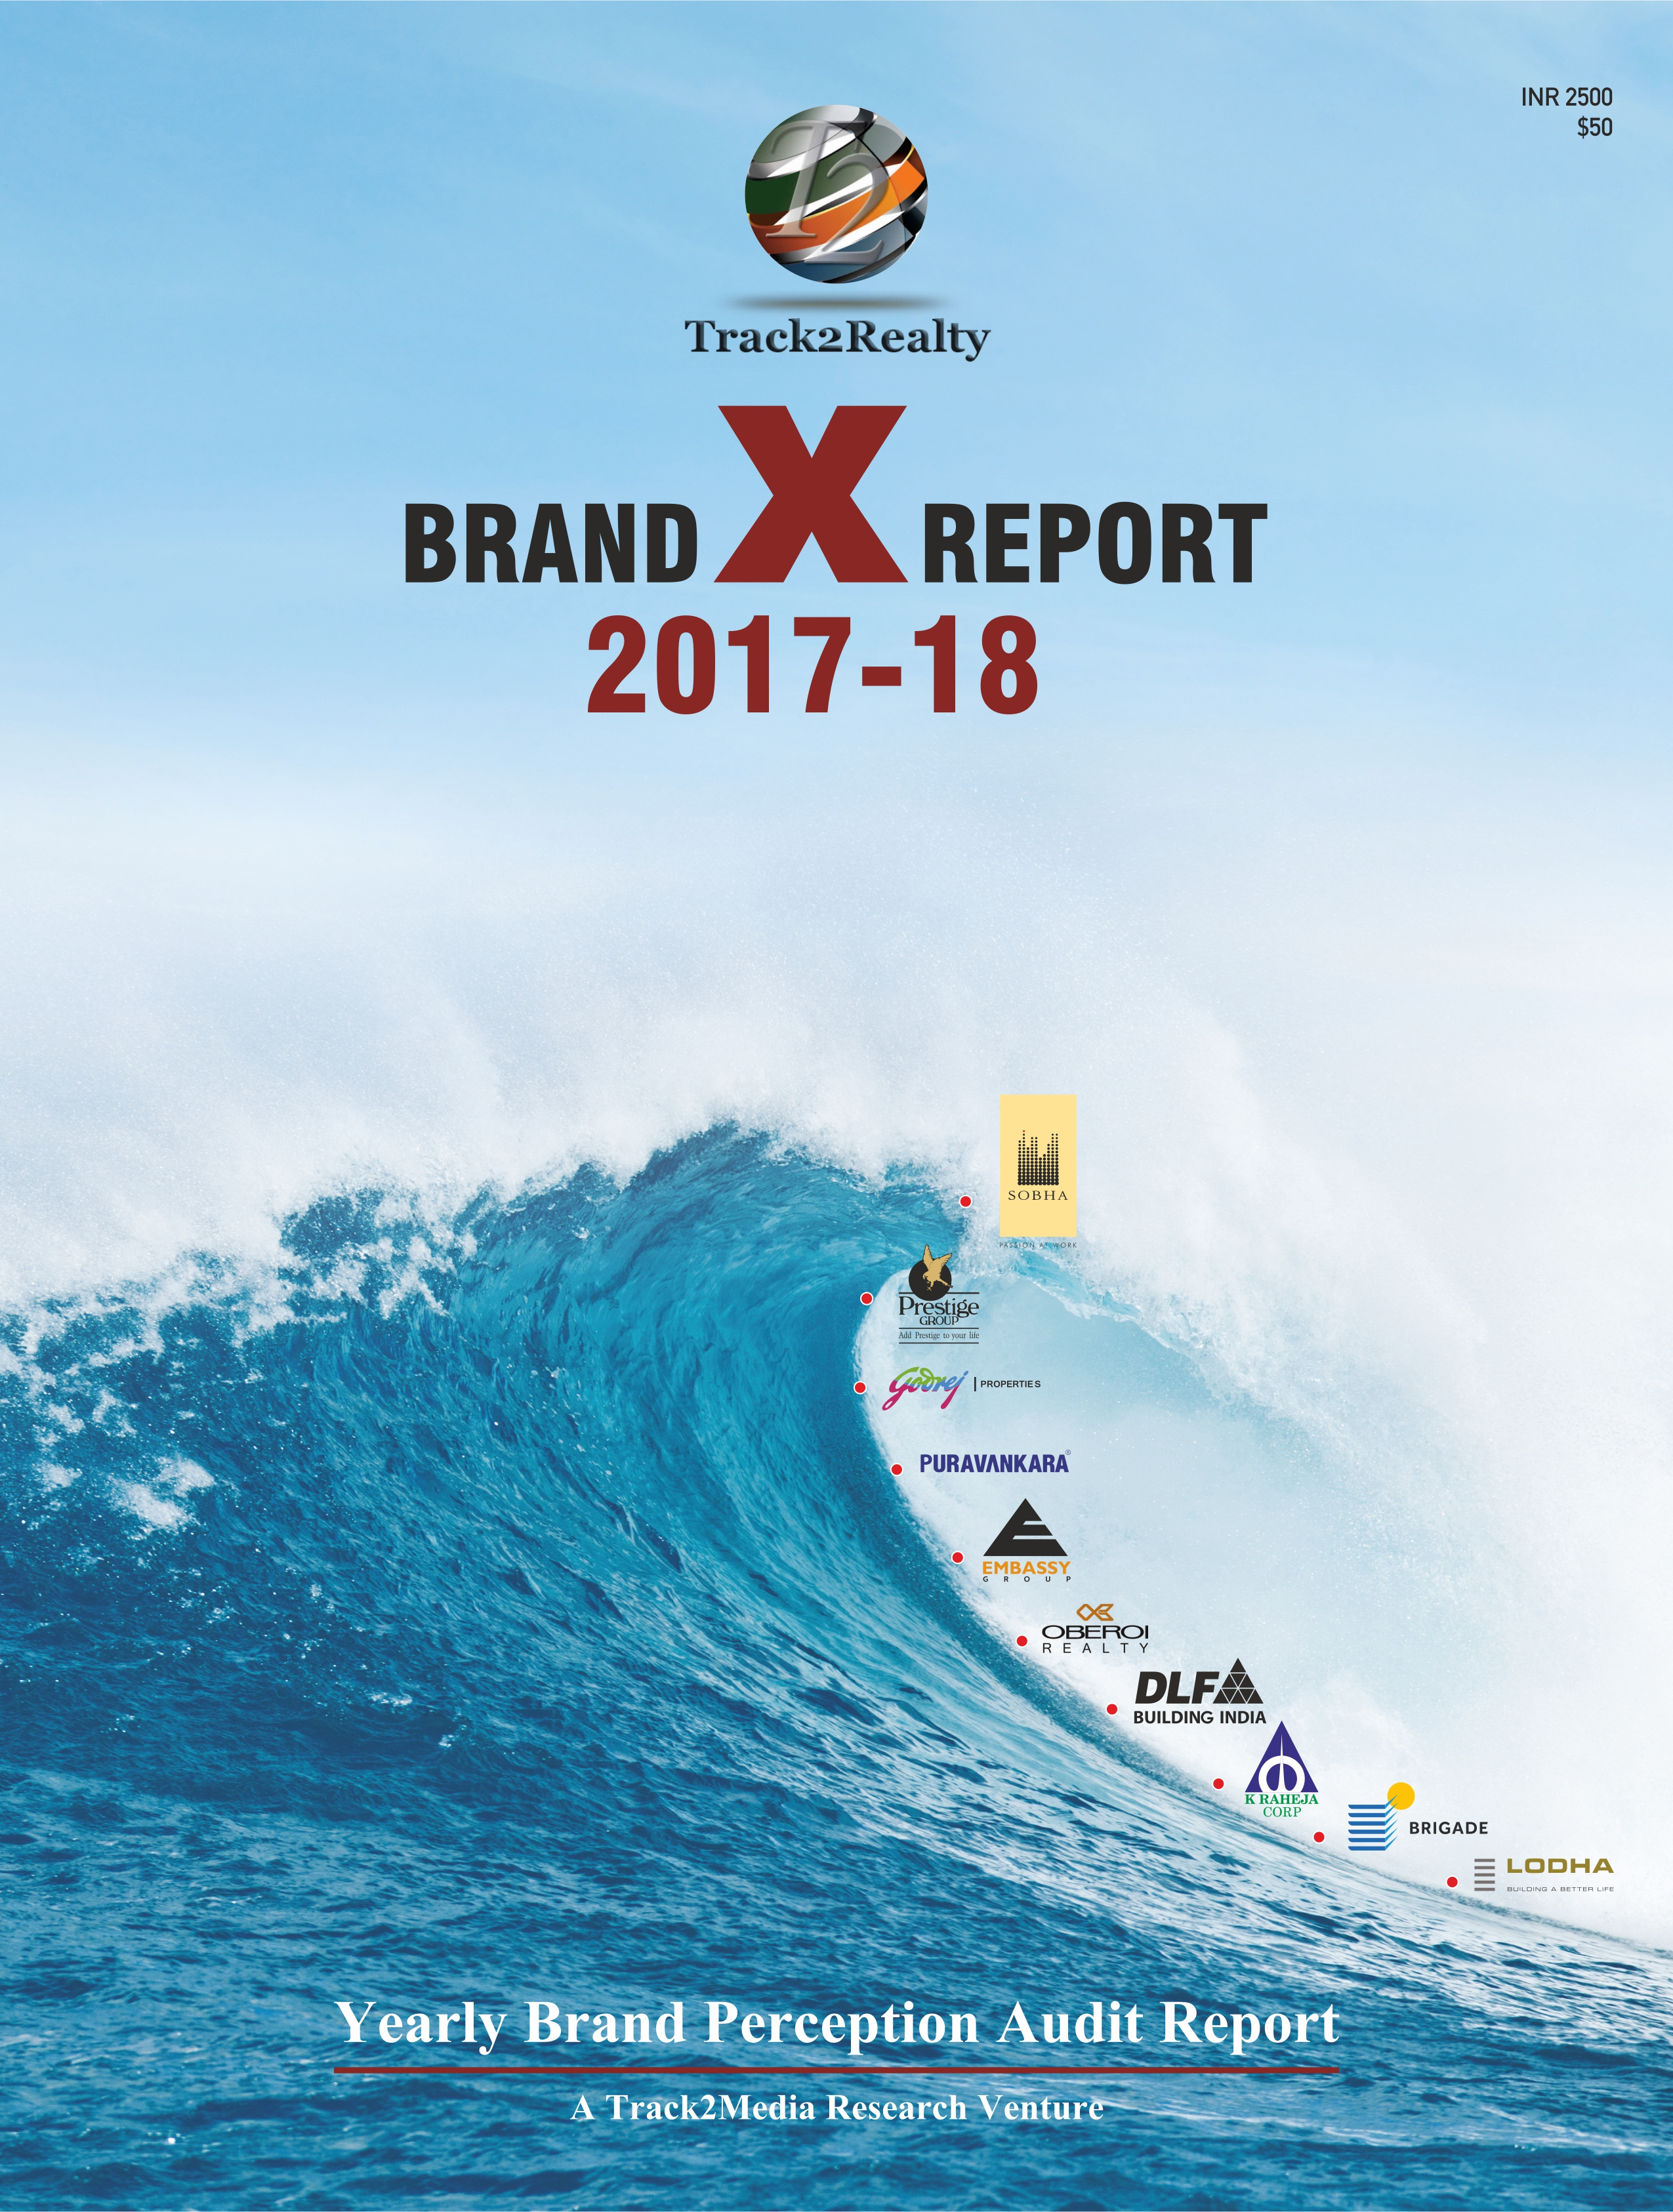 Track2Realty BrandXReport 2017-18, Brand X Report, Brand rating of Indian real estate, Brand performance of Indian real estate developers, Best builders in India, Best brands of Indian real estate, Brand Trust of Indian real estate, Bangalore developers top brand leadership, India real estate news, Indian realty news, Real estate news India, Indian property market news, Investment in Indian property, Track2Realty, Realty Fact, Realty Plus, Realty Myths, Realty Nxt